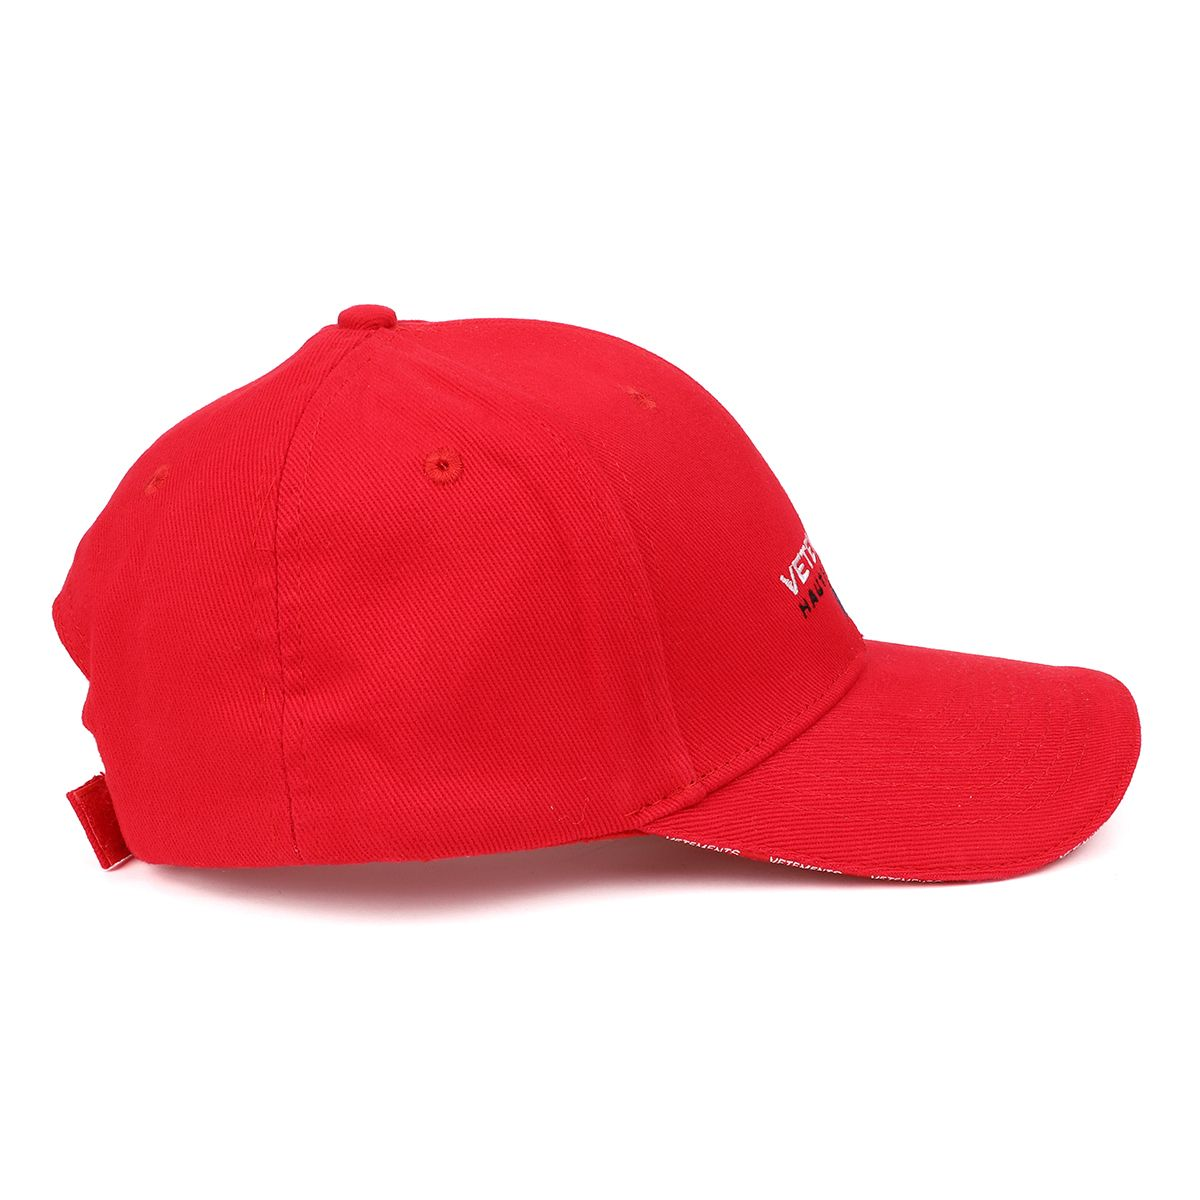 VETEMENTS VETEMENTS HAUTE COUTURE CAP / RED